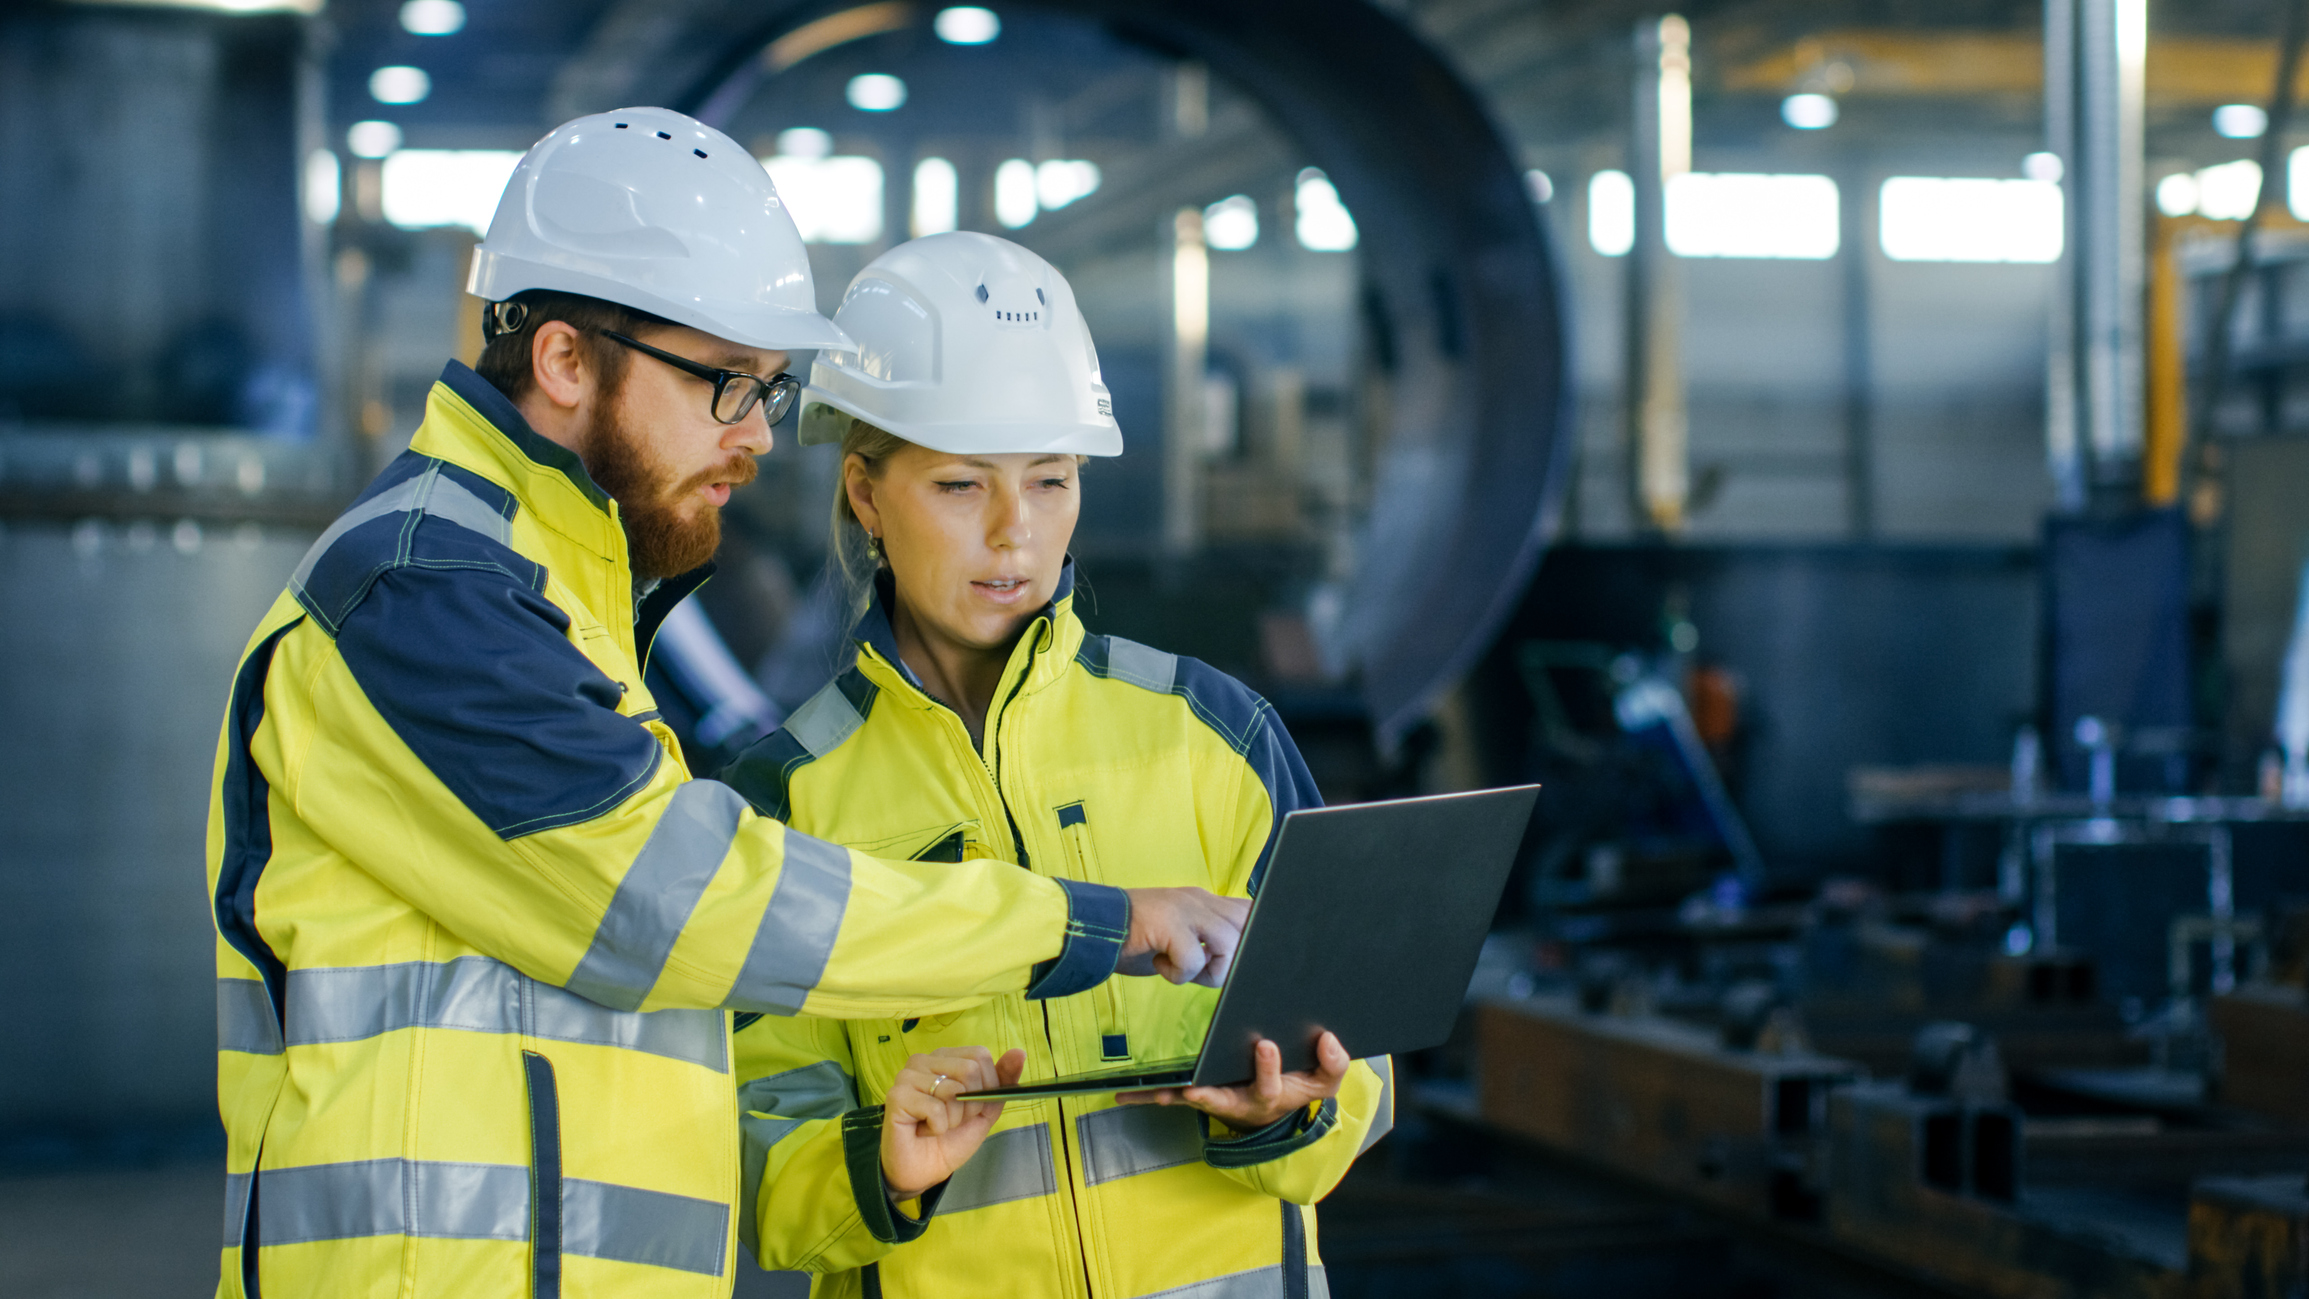 Process Safety Management Foundations, South & South East[Sep 2020]